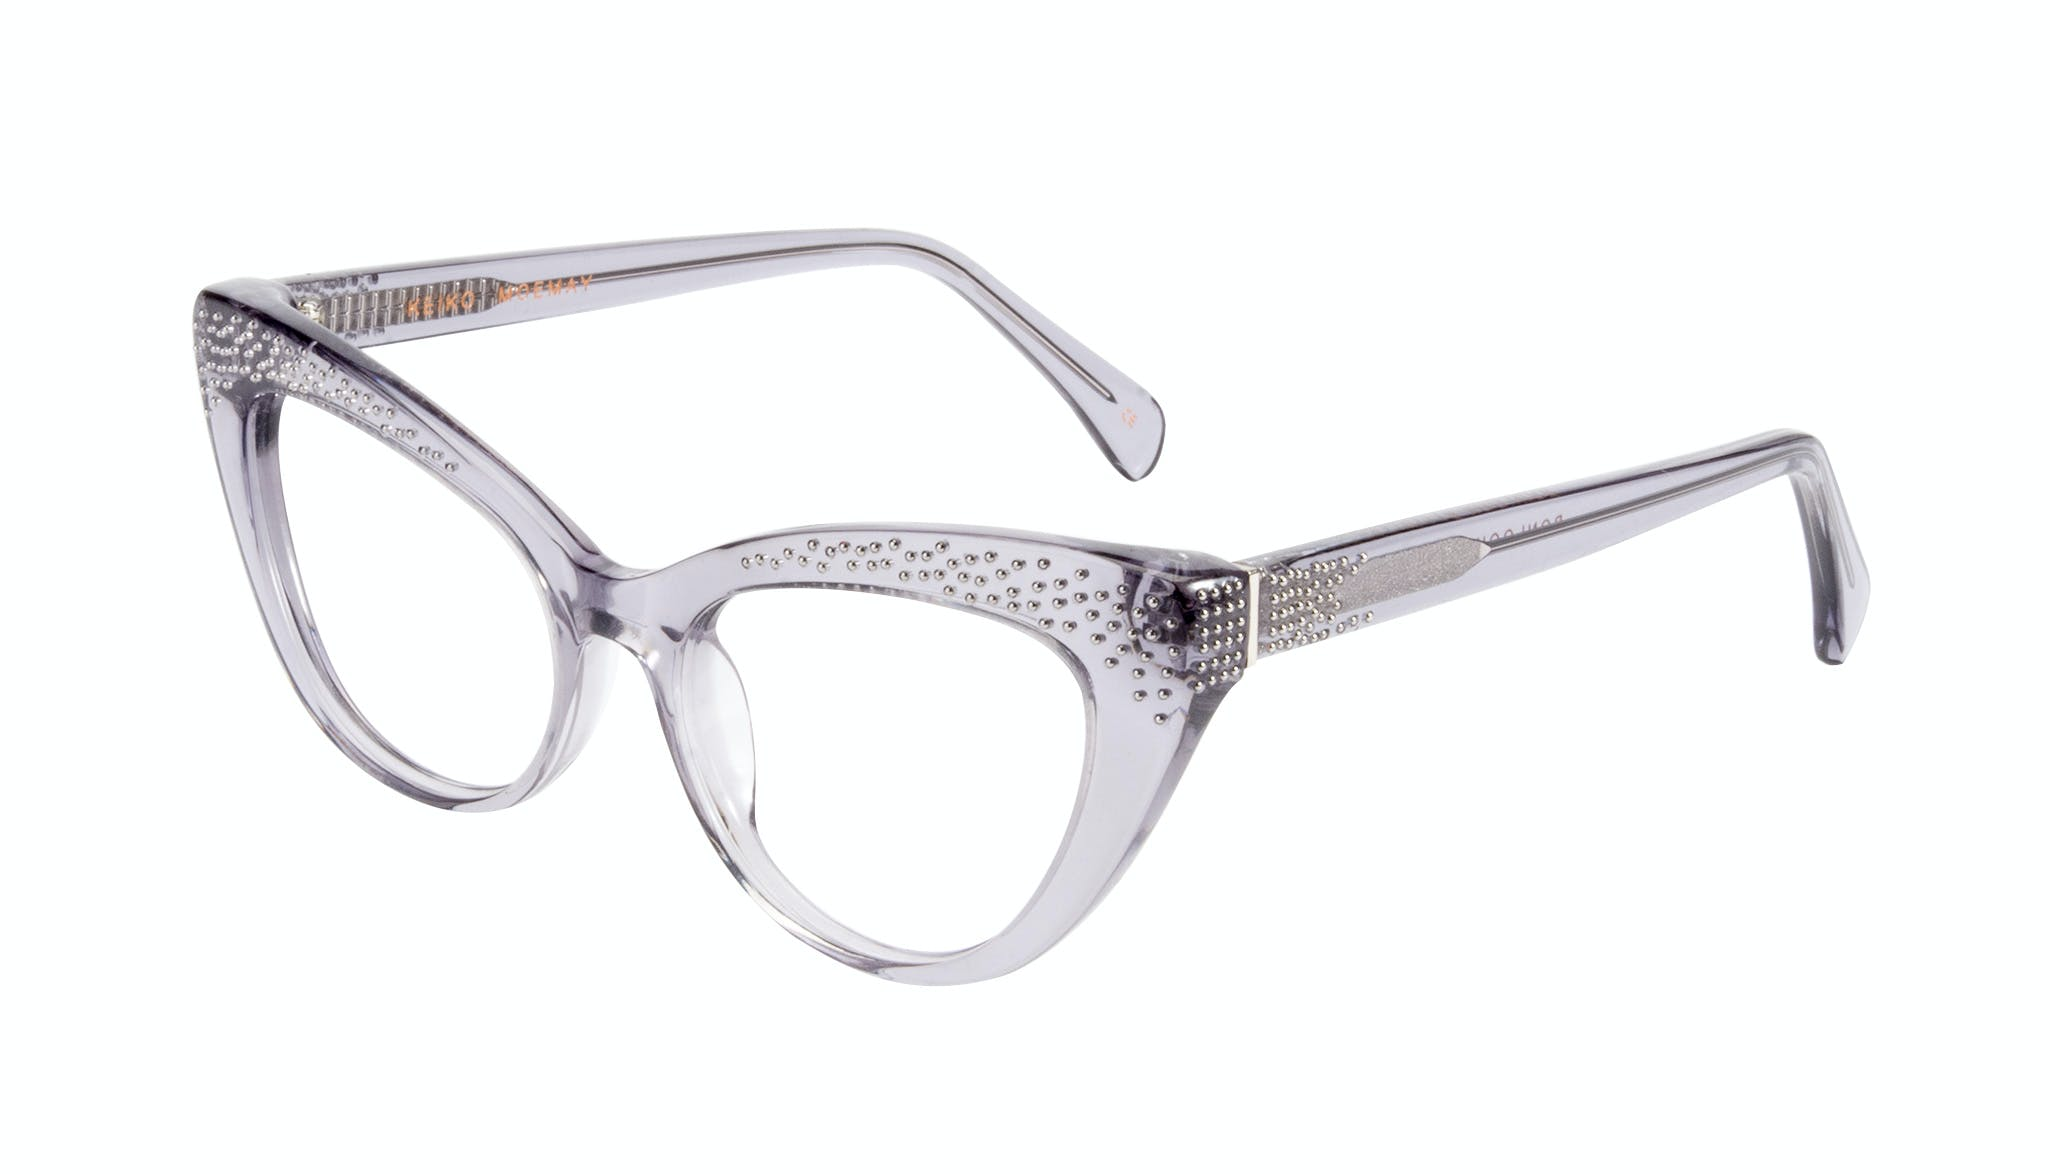 Affordable Fashion Glasses Cat Eye Daring Cateye Eyeglasses Women Keiko Moe May Tilt